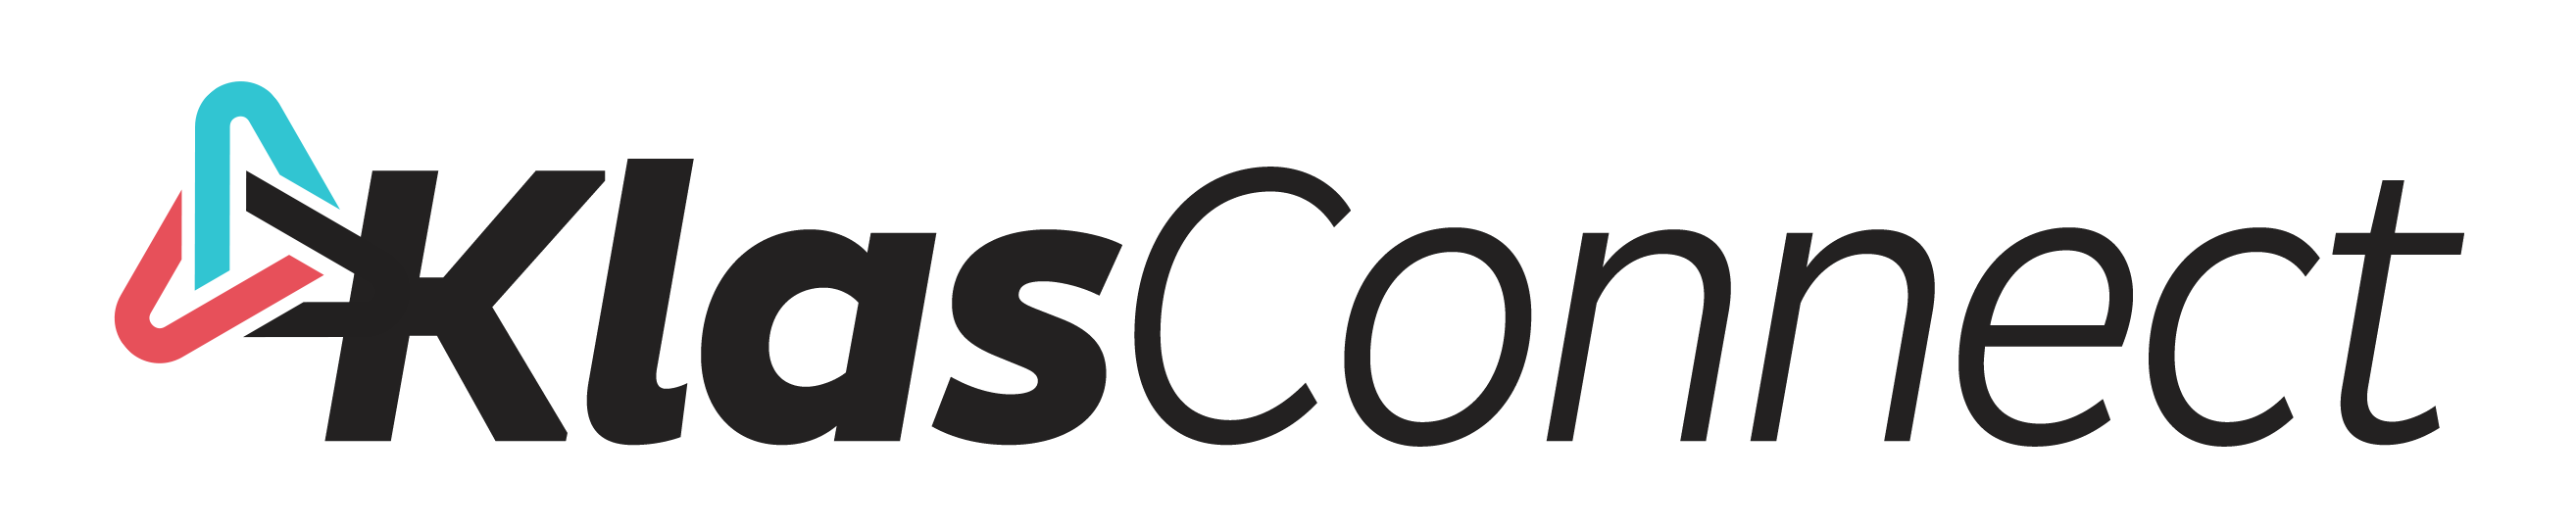 klasconnect logo